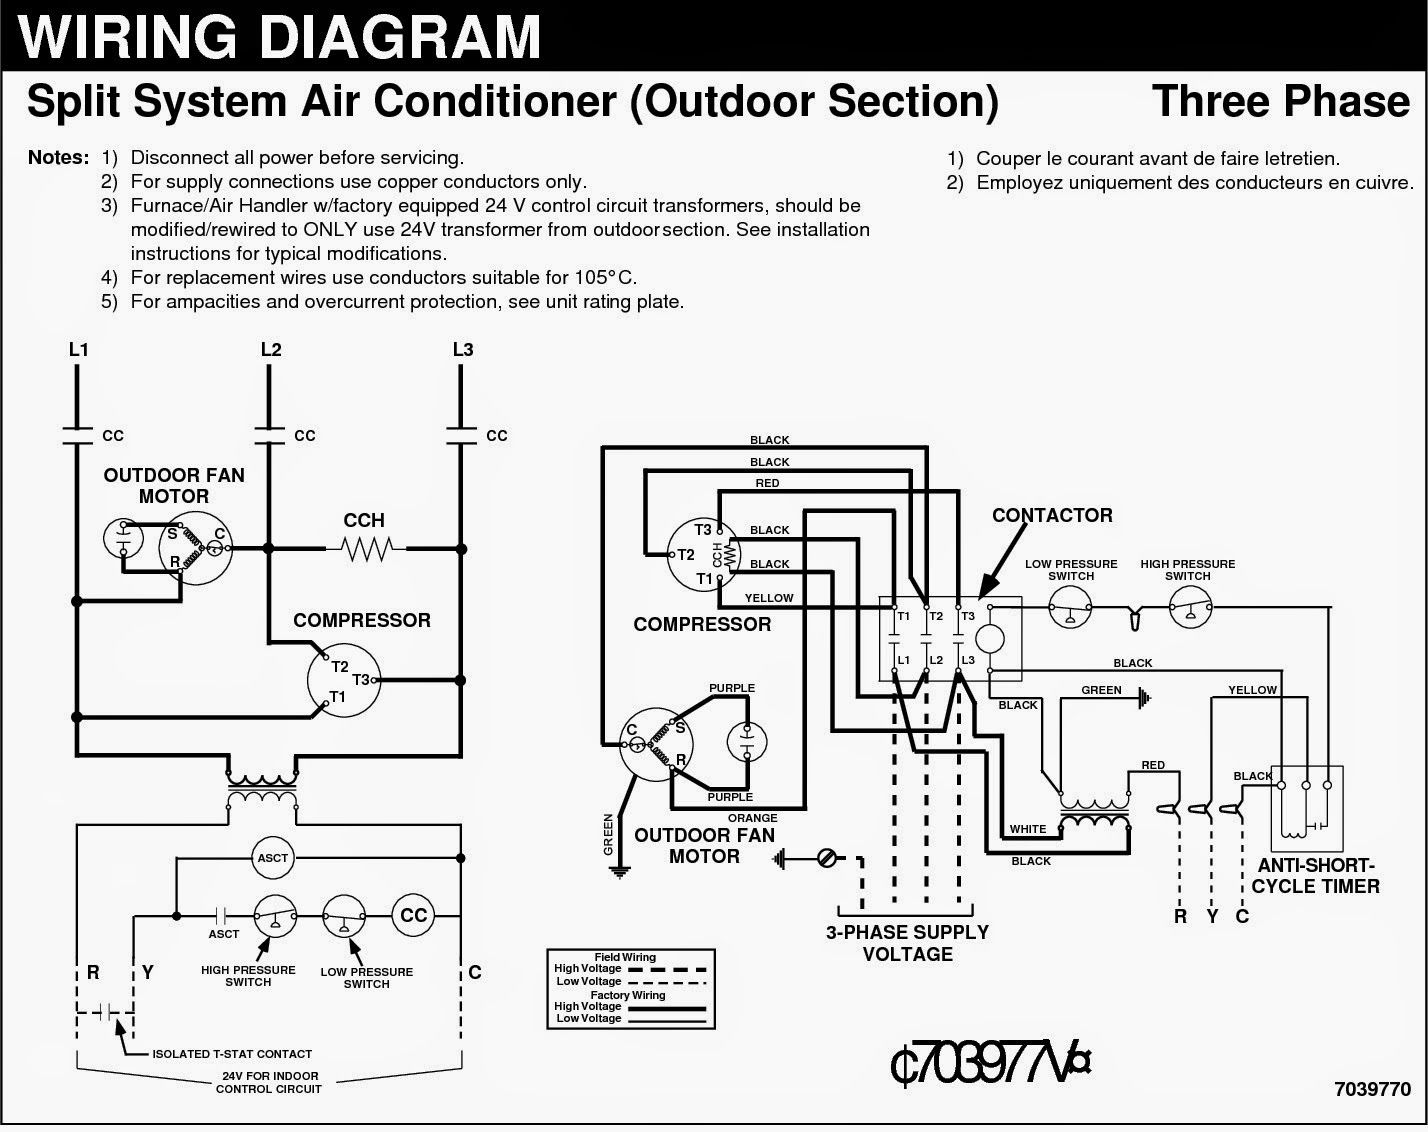 air conditioning wiring diagram on a split system heat pump wiring